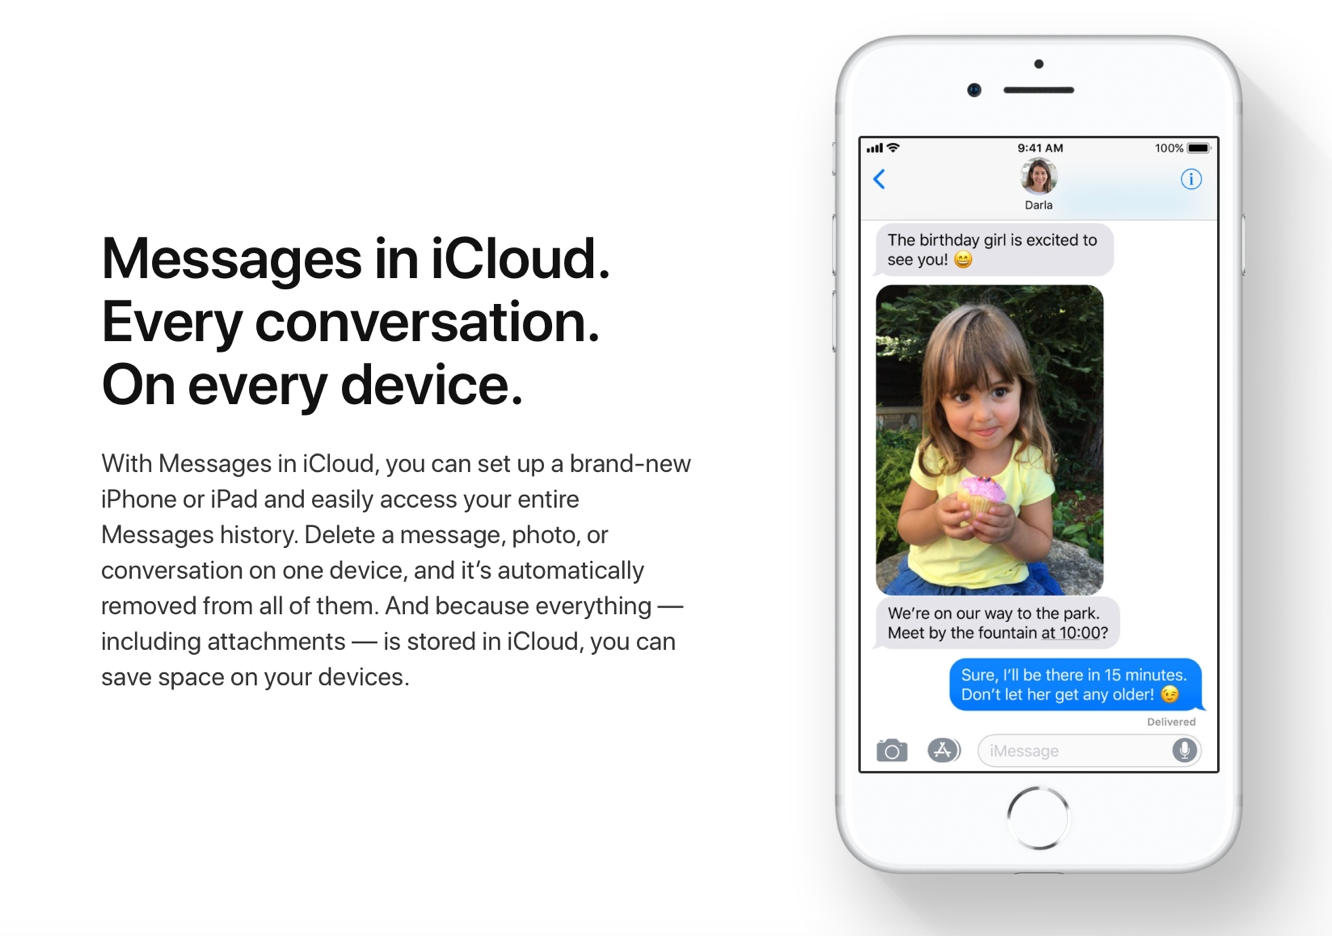 ElcomSoft's forensic tools actually confirm security of Messages in iCloud